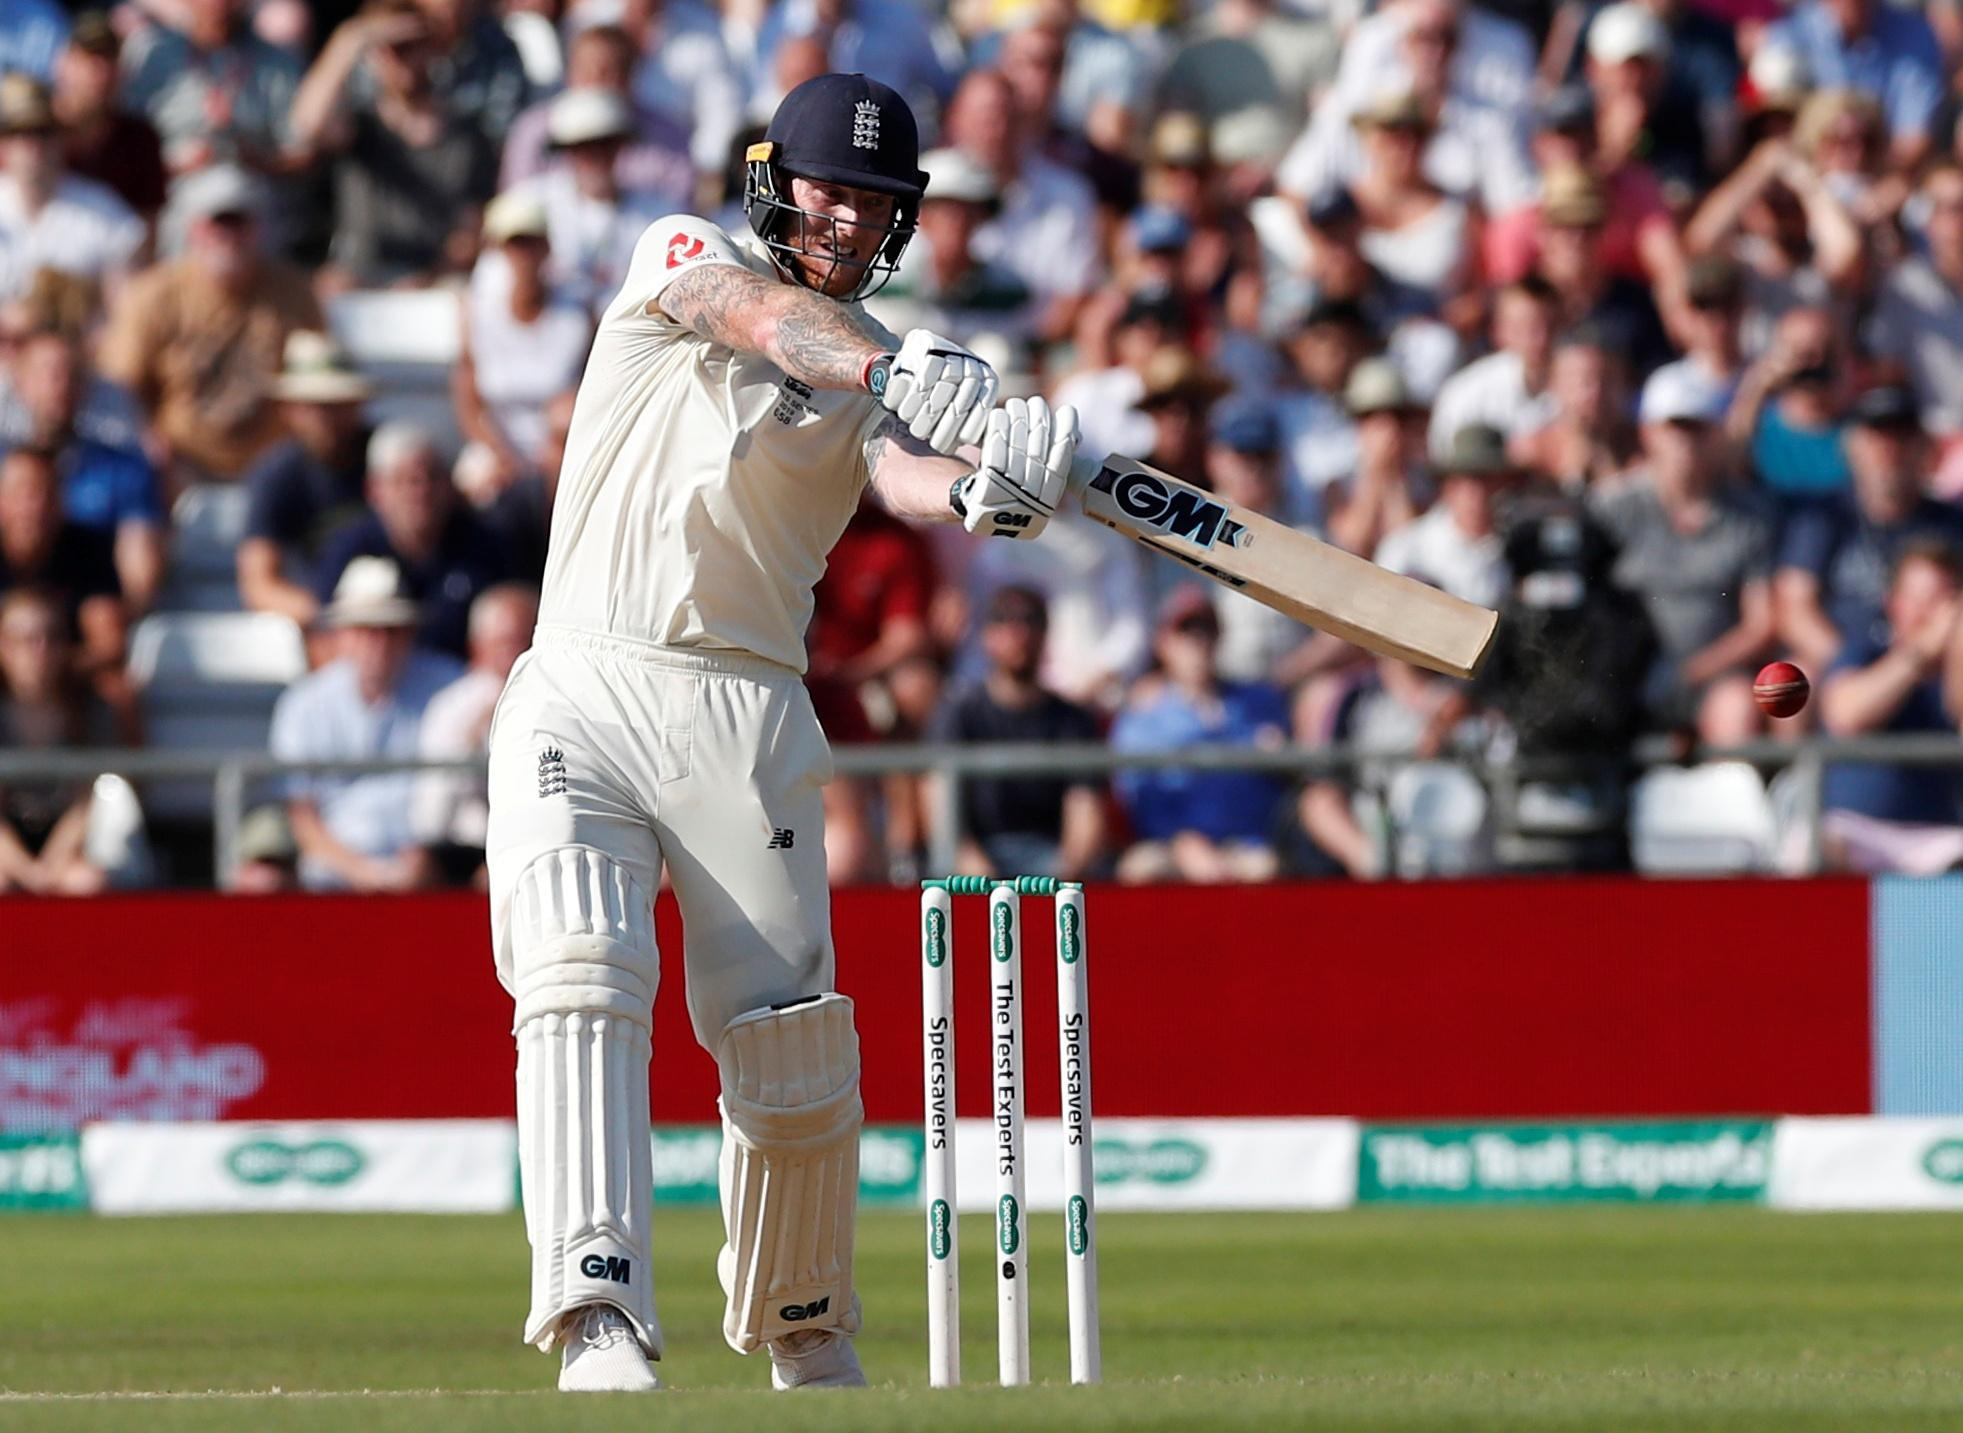 Stokes needs less bowling so his batting can blossom - Brearley